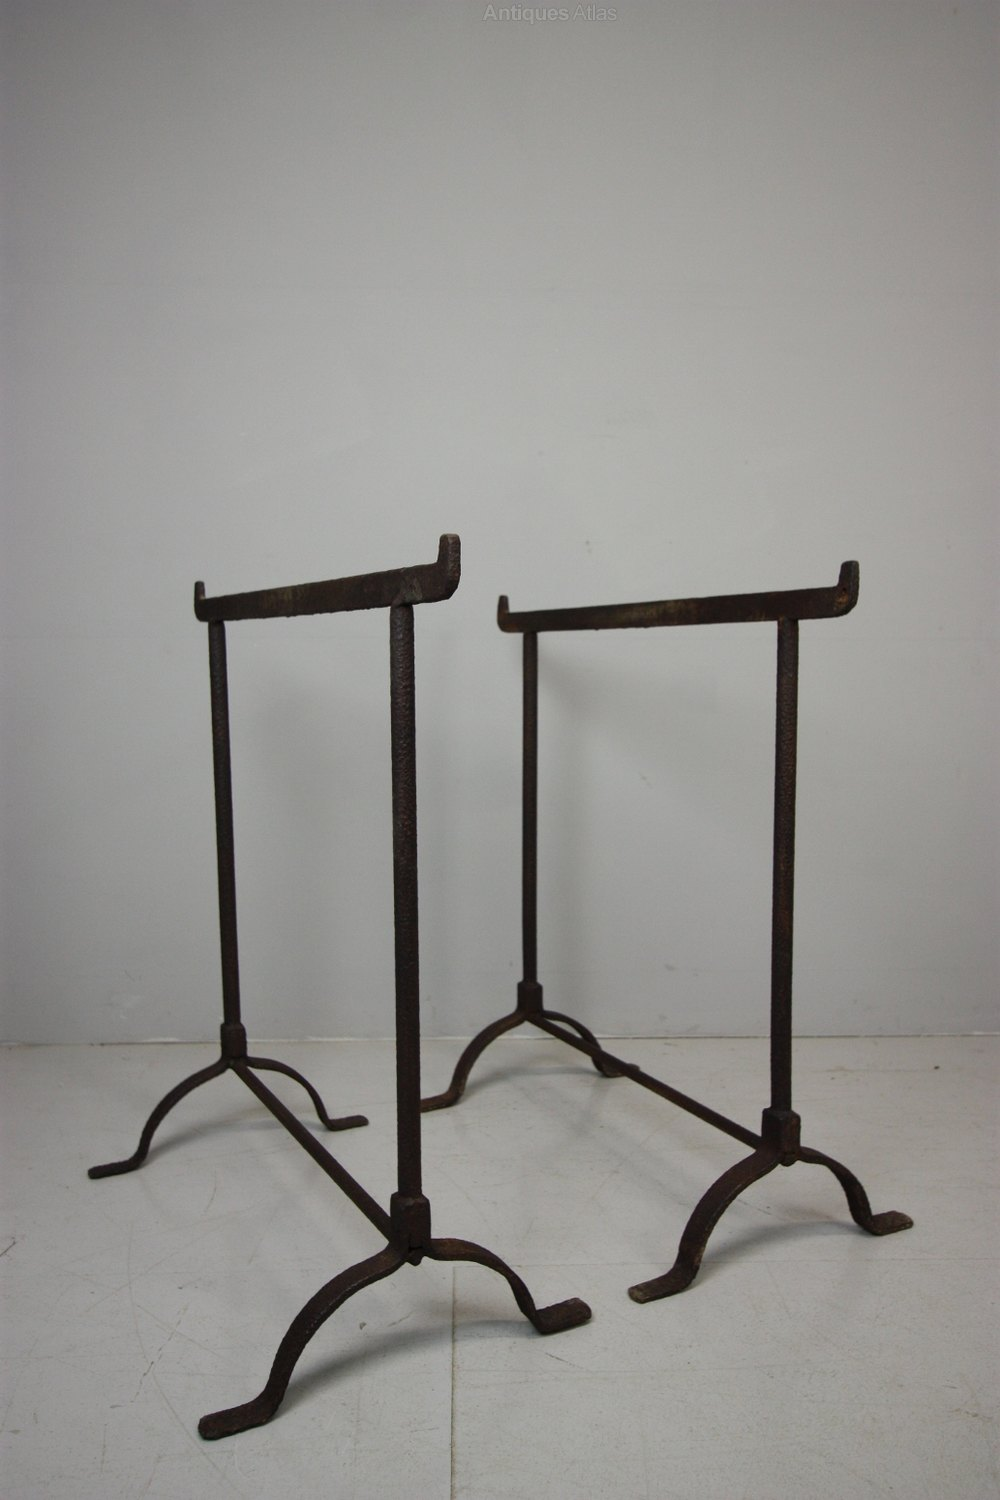 Pair of 19th century antique iron trestle table legs for Old iron table legs